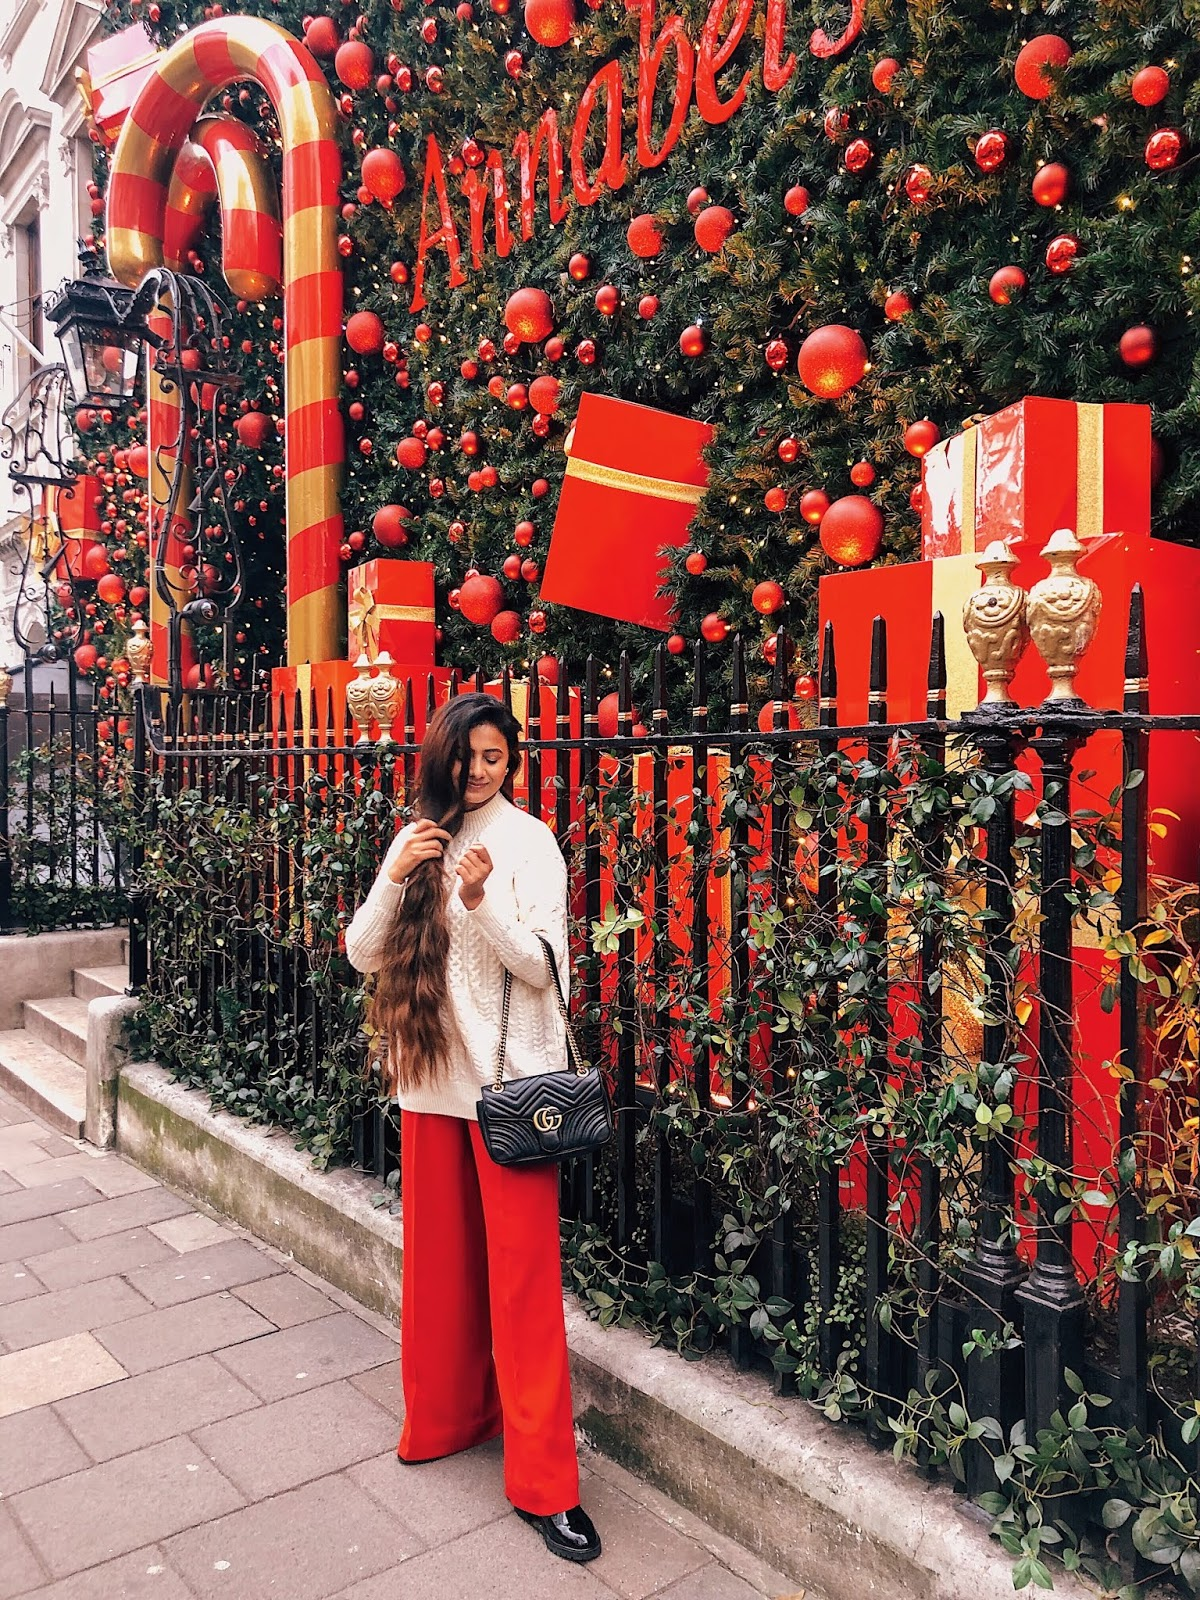 christmas in london, christmas decoration in london, christmas 2018, christmas decoration london 2018, indian blogger, london blogger, annabels mayfair, annabels mayfair christmas decoration, london street style, christmas outfit, wear in london during christmas